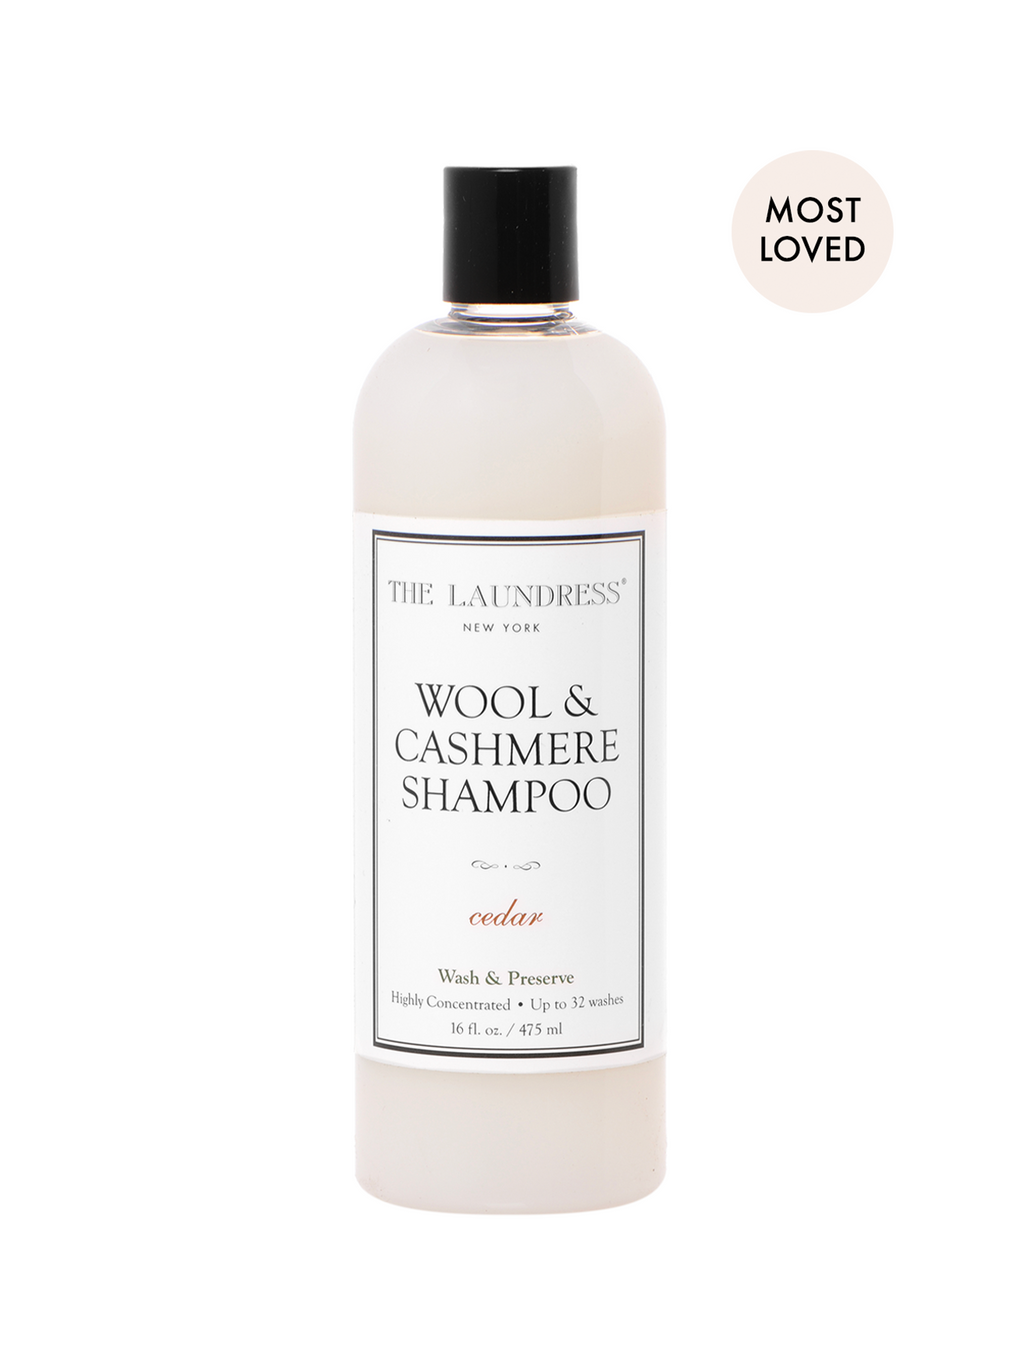 The Laundress Wool & Cashmere Shampoo Cedar 16 fl oz